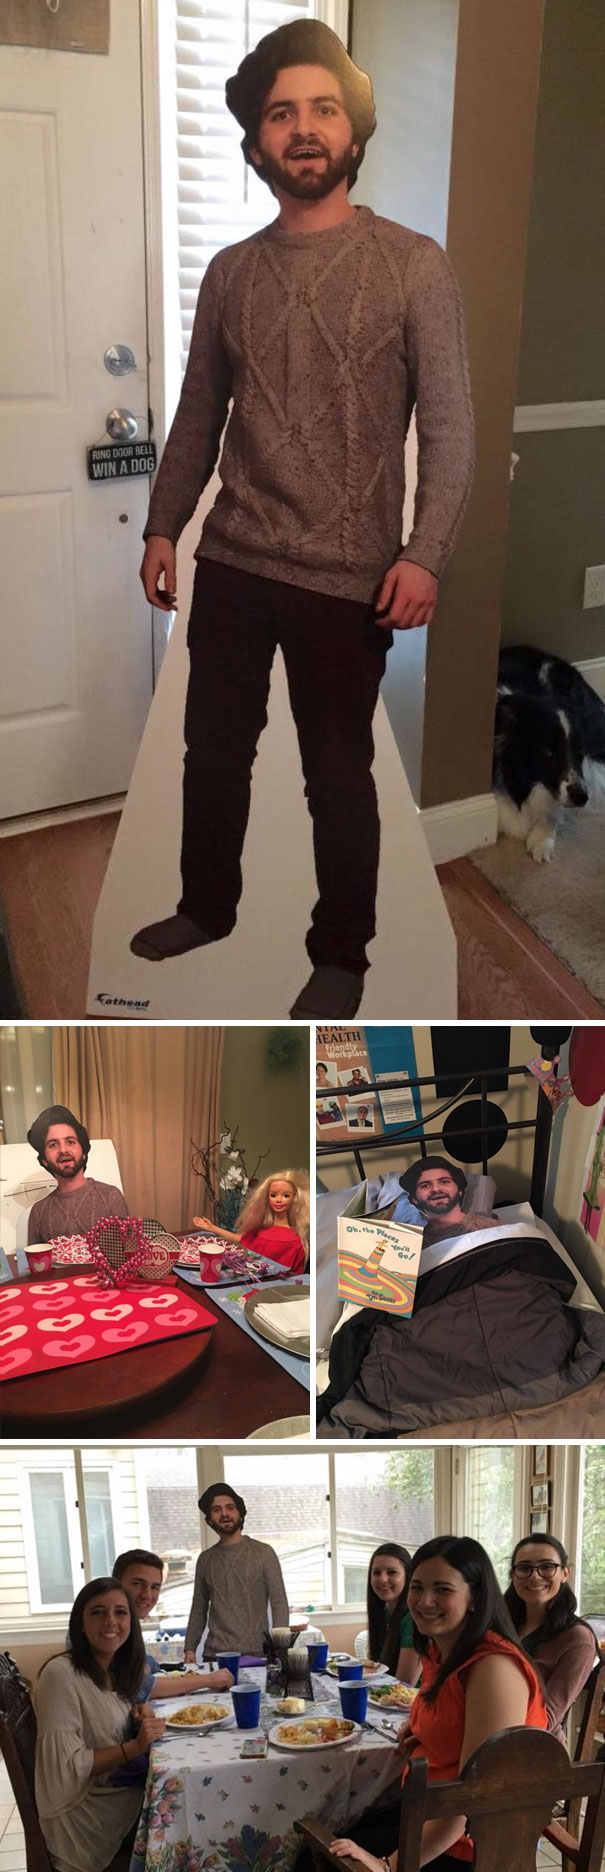 #5 Son Studying Abroad Sent Mom Cutout Of Himself And Thought They'd Laugh And Put Somewhere In The Corner. But His Mom Decided To Take The Cutout Along To Family Gatherings